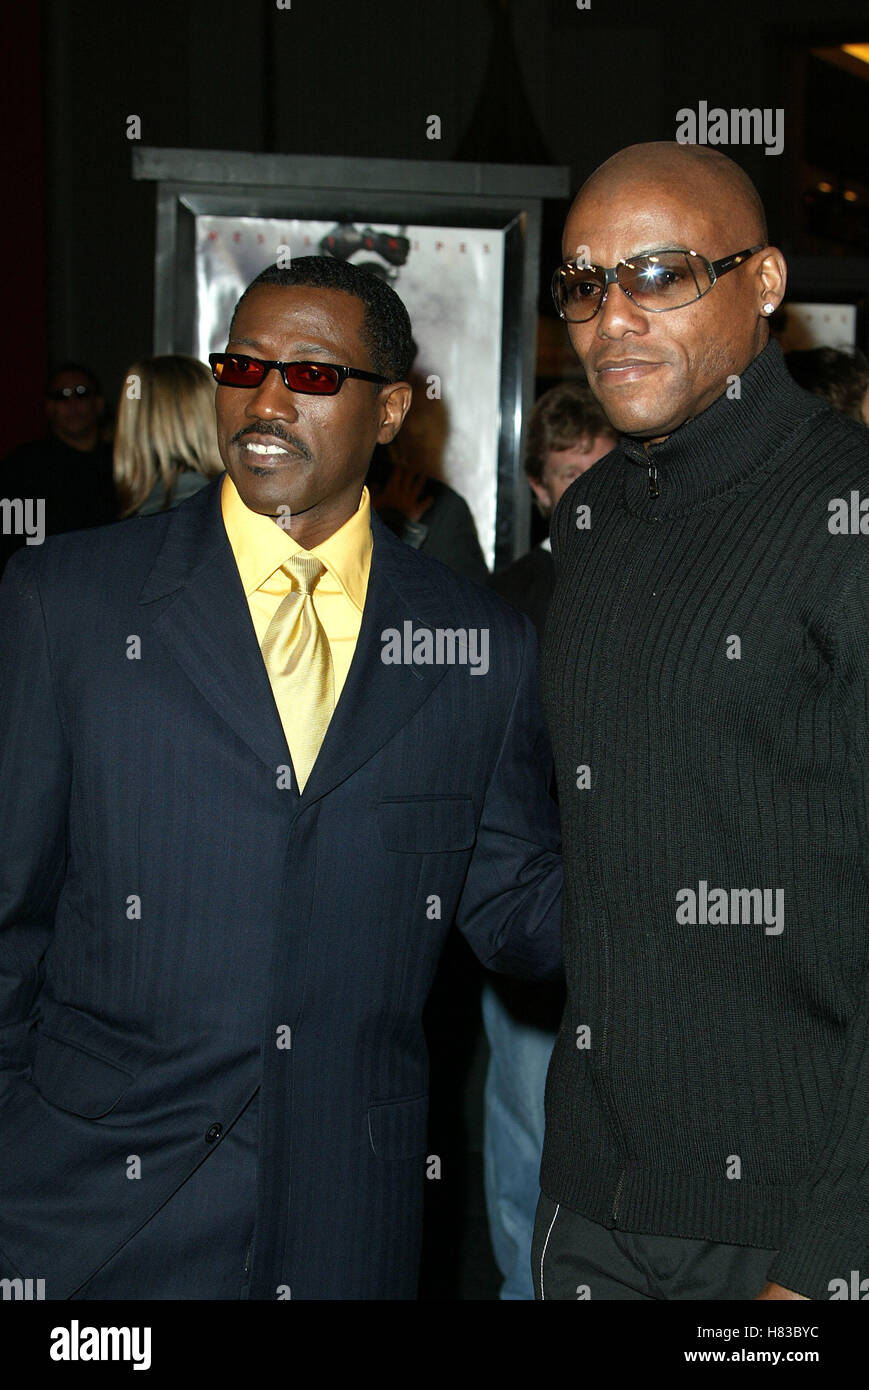 WESLEY SNIPES & CARL LEWIS BLADE 2 FILM PREMIERE MANN'S CHINESE THEATRE HOLLYWOOD USA 21 March 2002 - Stock Image